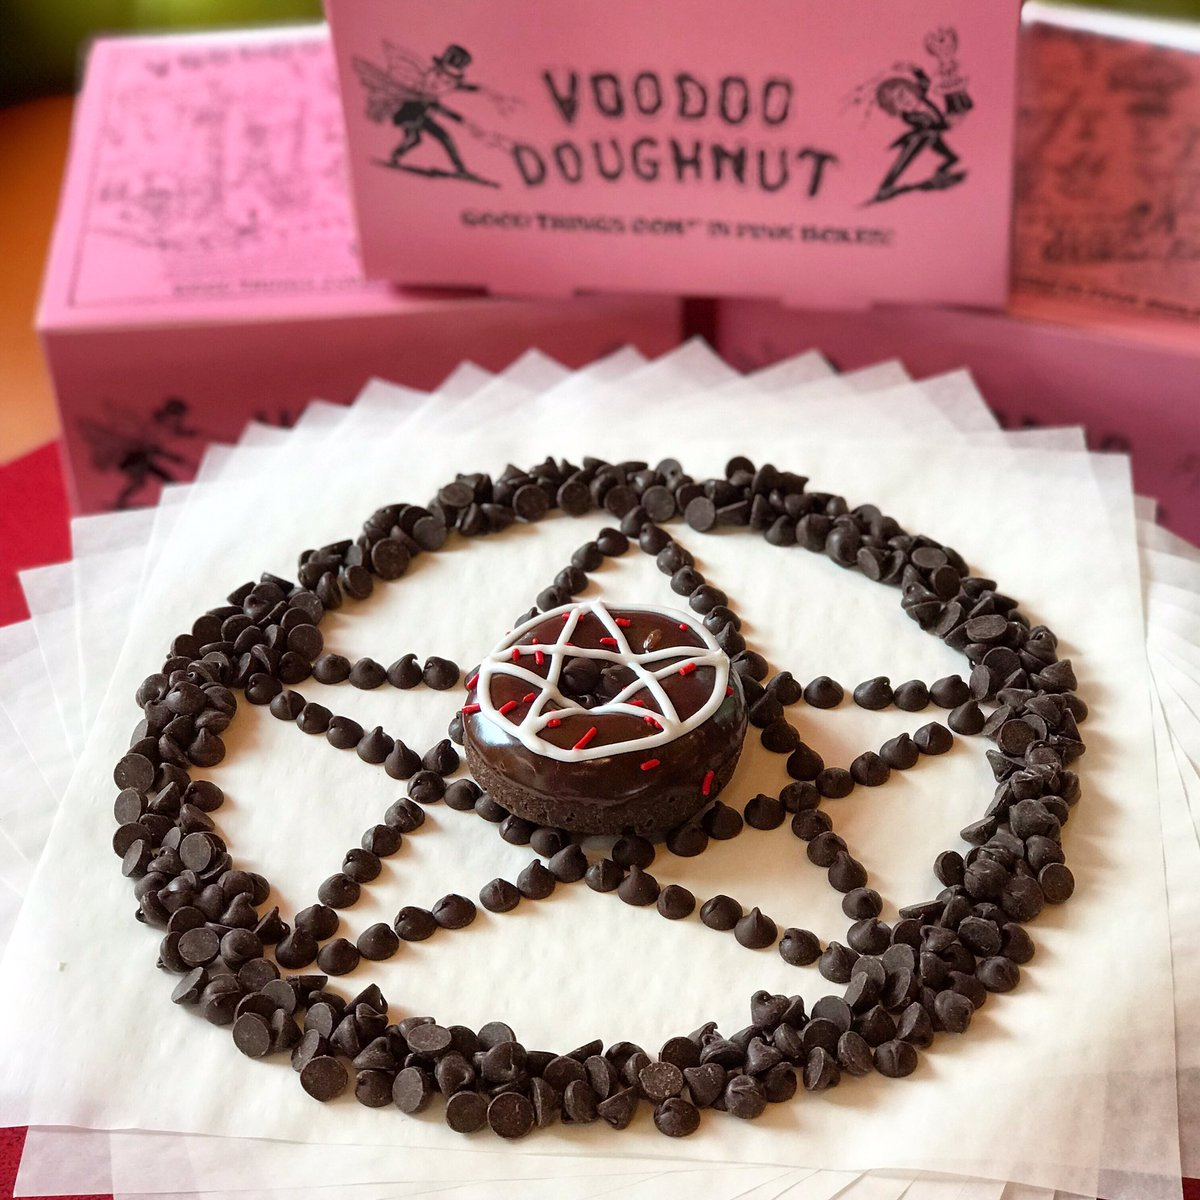 Celebrate #ChocolateChipDay with our most devilish doughnut, the Diablos Rex, a devils food cake with chocolate frosting, red sprinkles, chocolate chips & a pentagram! Sure to conjure up the sweetest spirits! #NationalChocolateChipDay #VoodooDoughnut<br>http://pic.twitter.com/LFO0AQ6itY